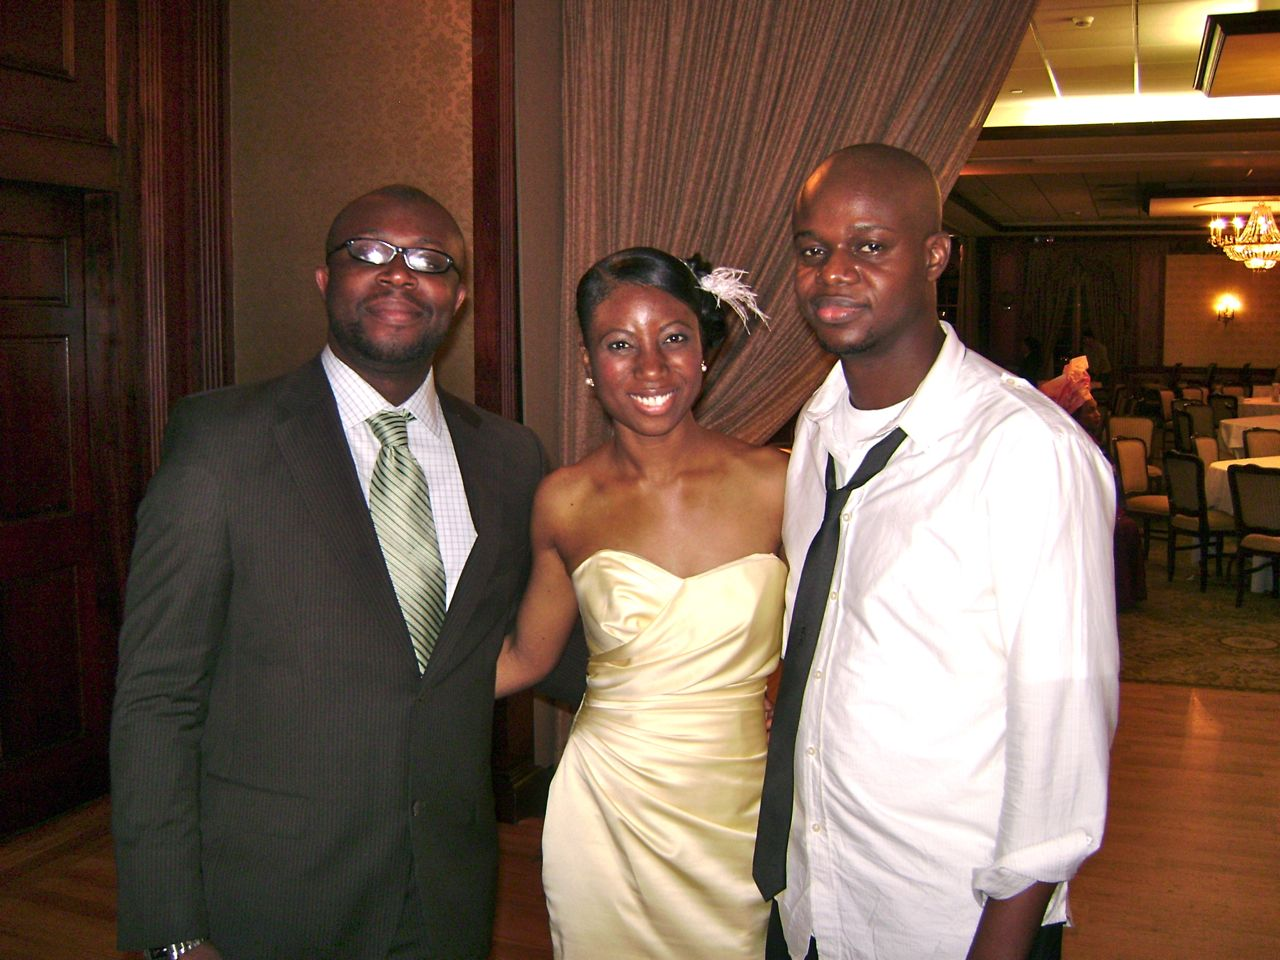 Folake and Mashood Wedding 2009 - 10